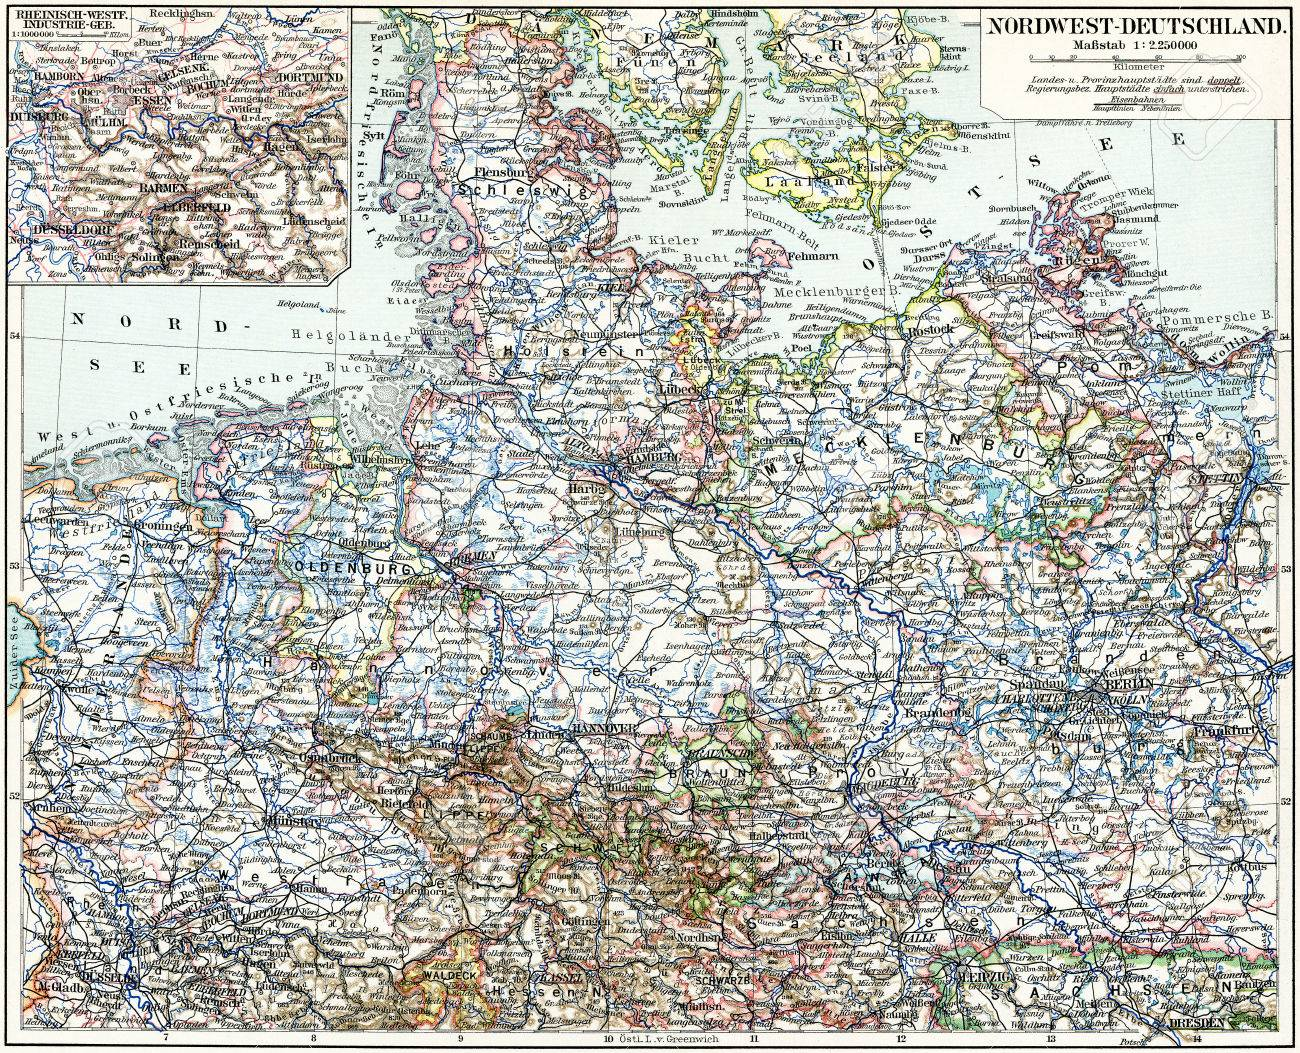 Map Of North West Germany.Map Of The North West Germany Publication Of The Book Meyers